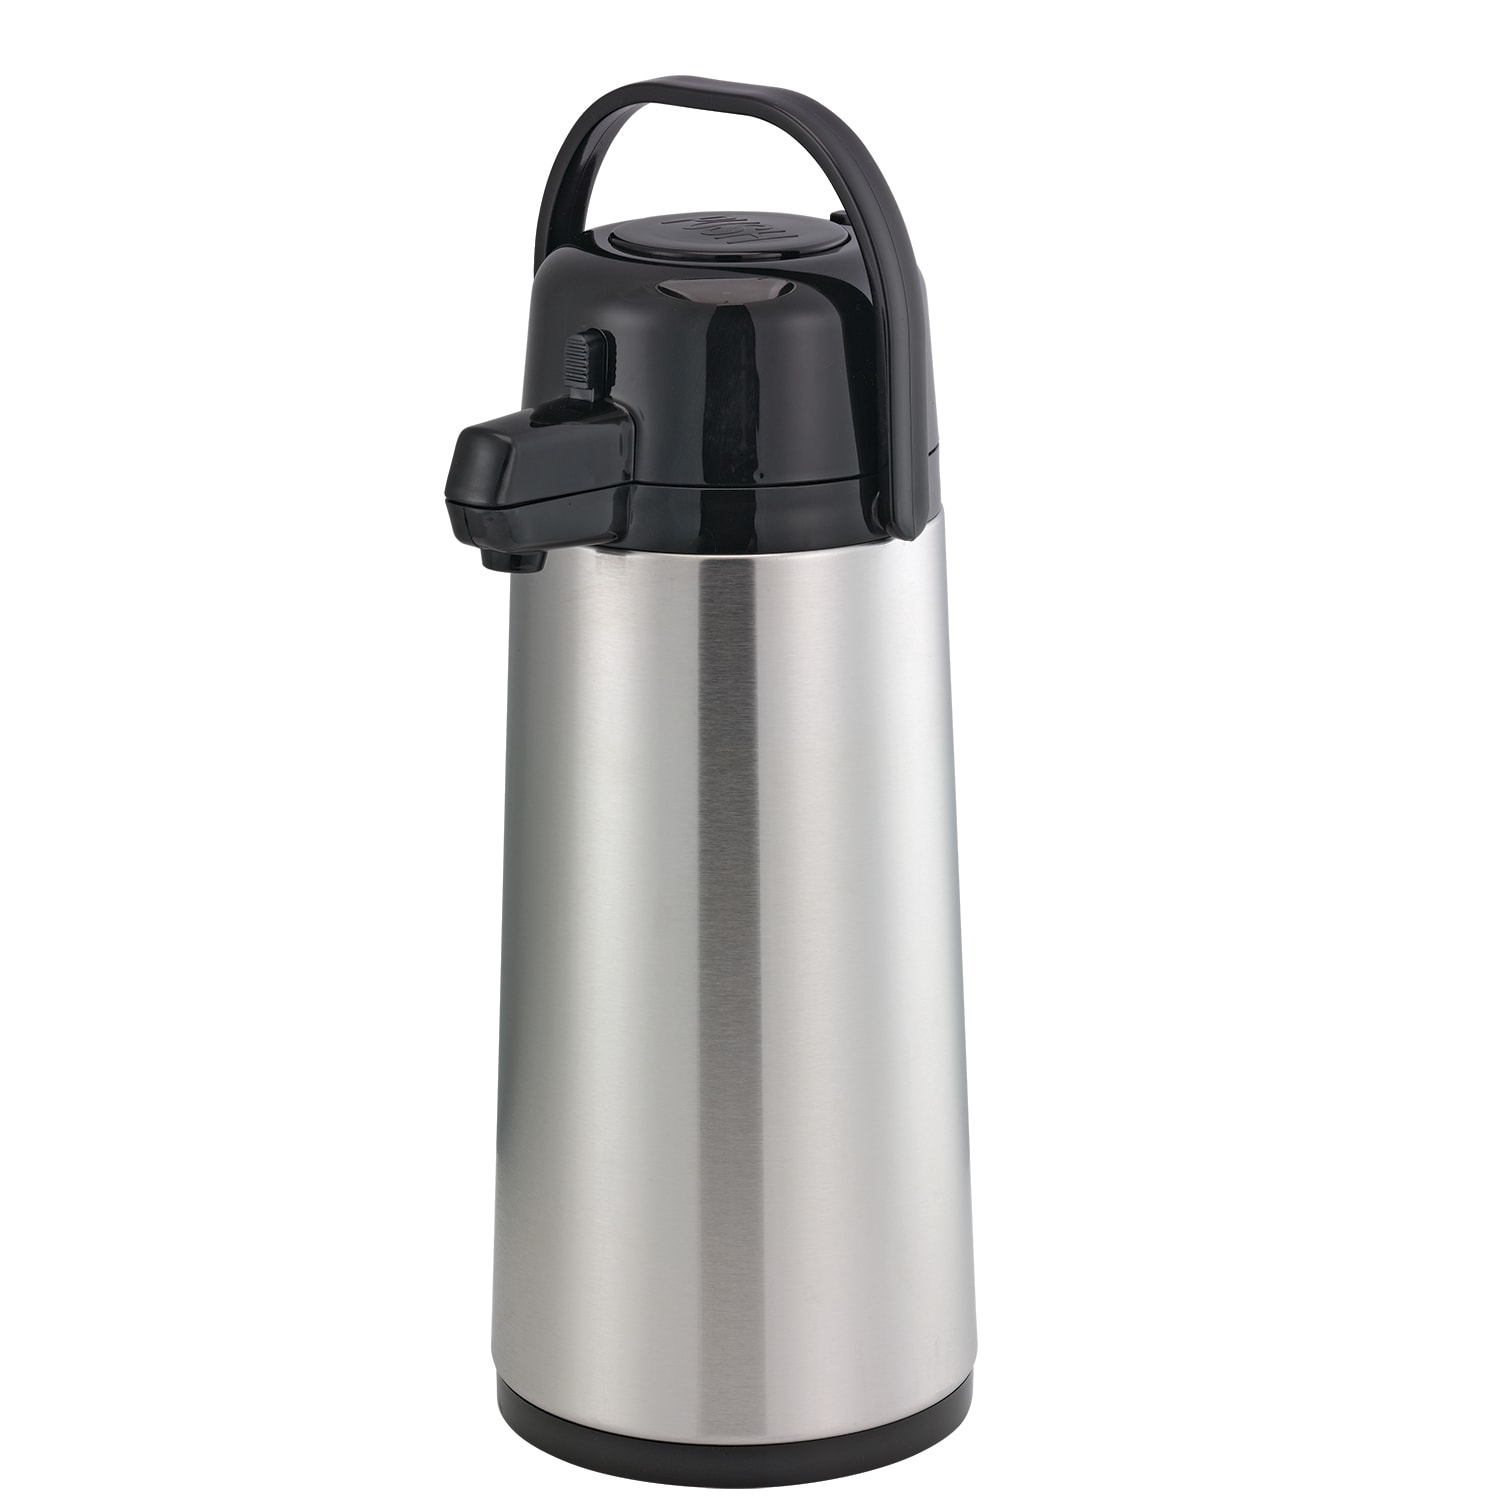 Service Ideas ECA19S 1.9-liter Insulated Glass-Lined Airpot w/ Smooth Body, Pump Style